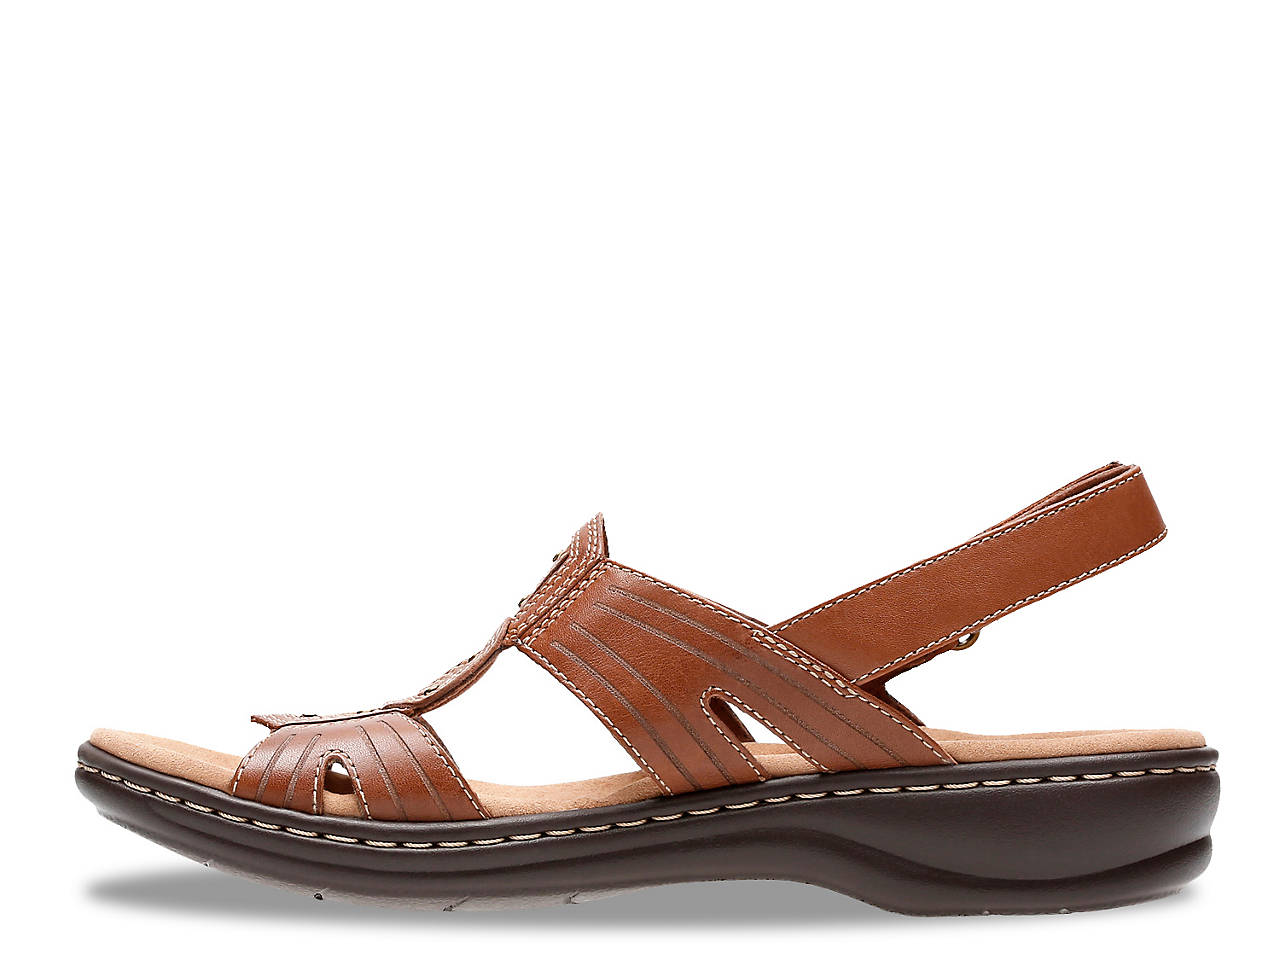 a83bbd530ee Clarks Leisa Vine Sandal Women s Shoes